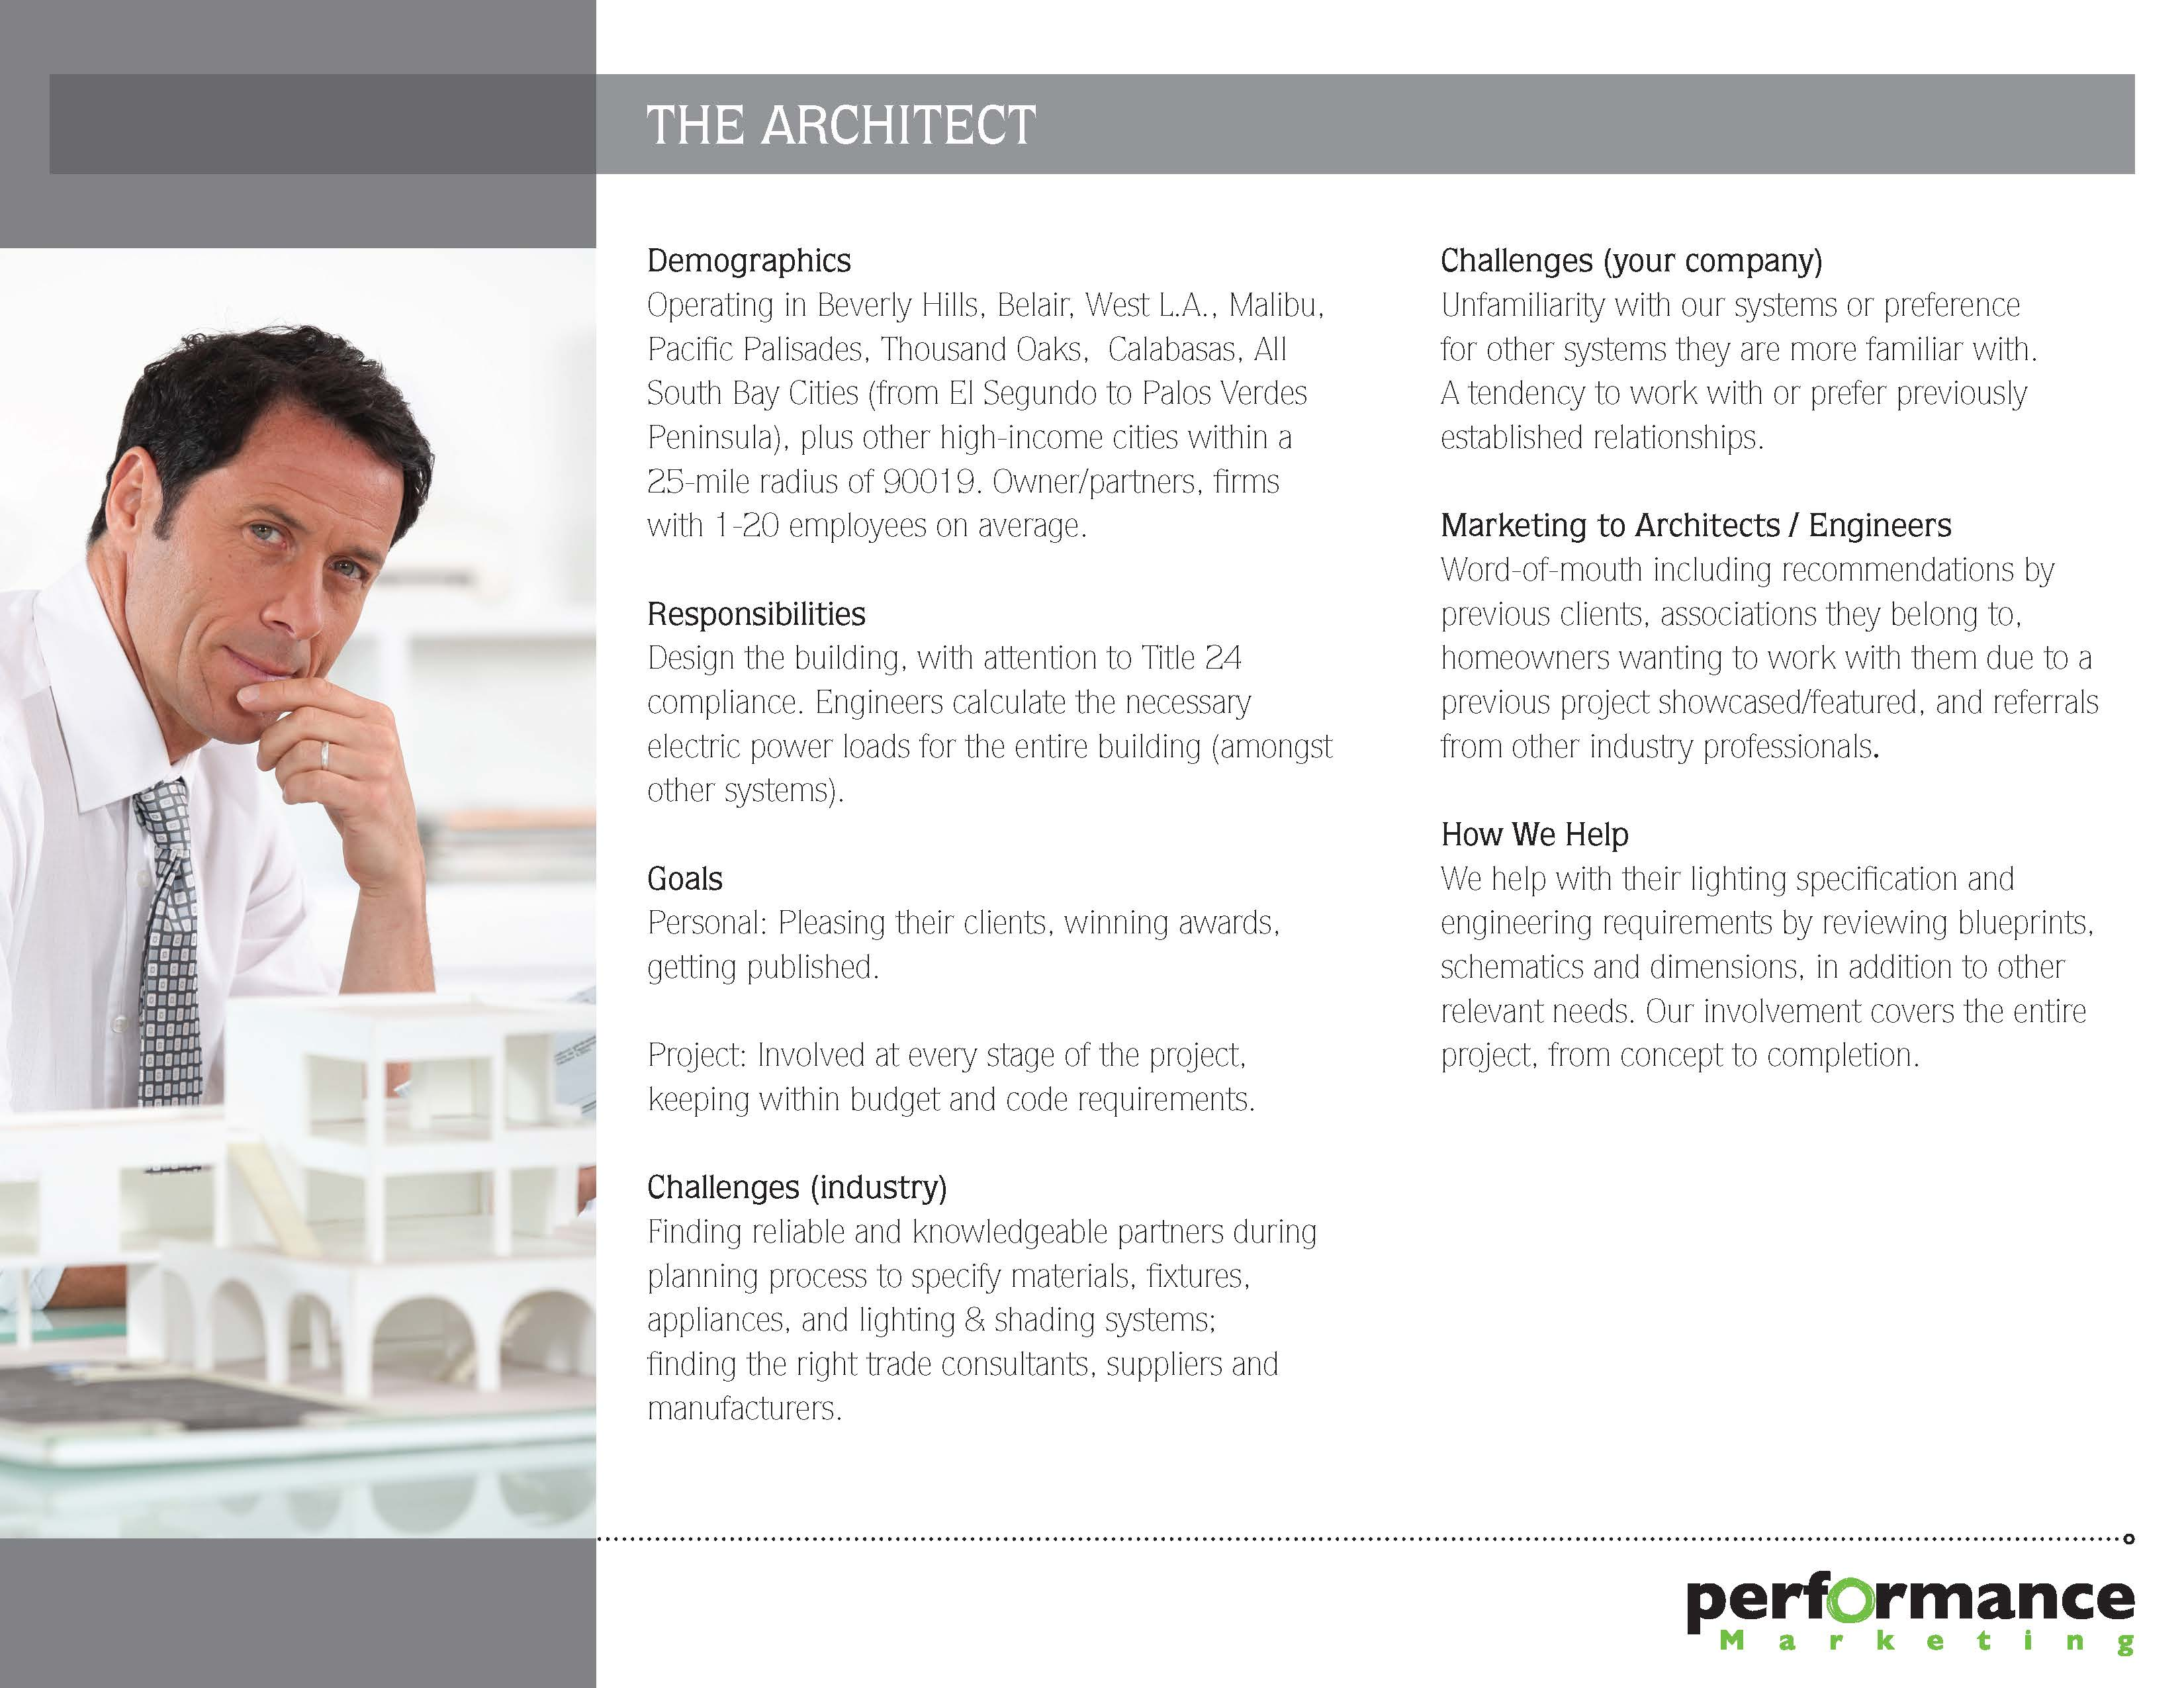 Generic Architect Persona